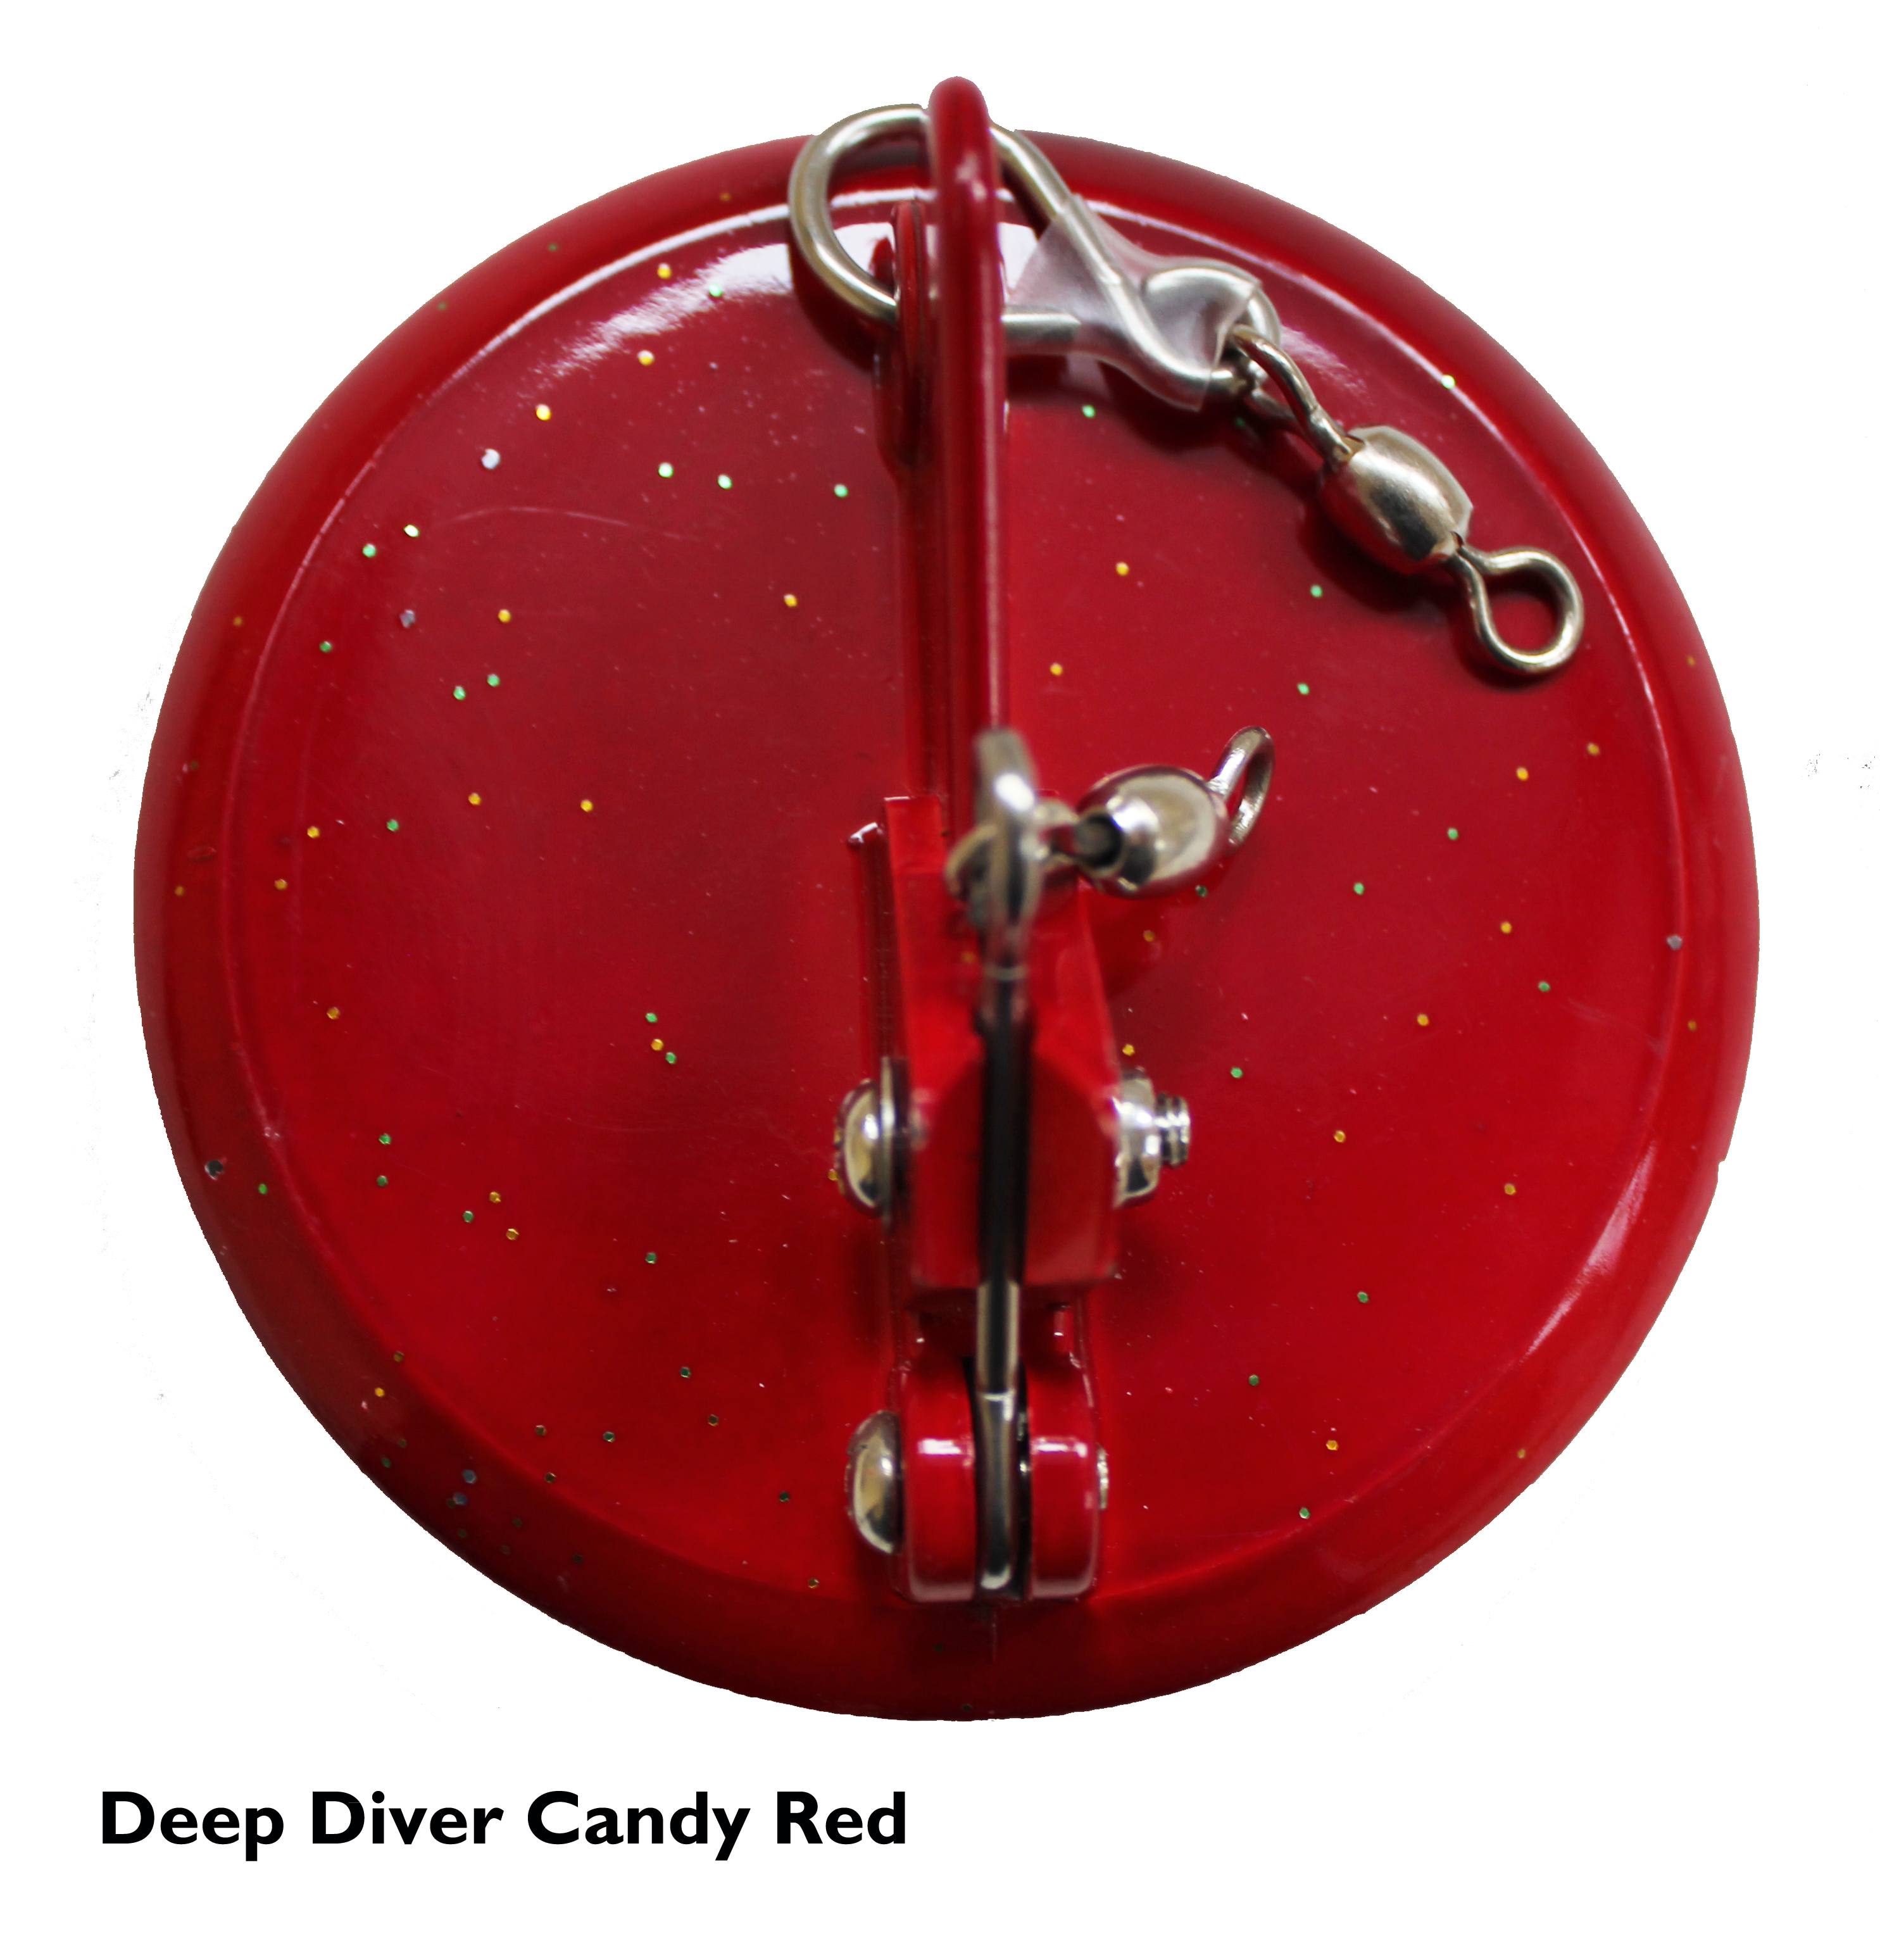 DC Deeper Diver 82mm Candy Red